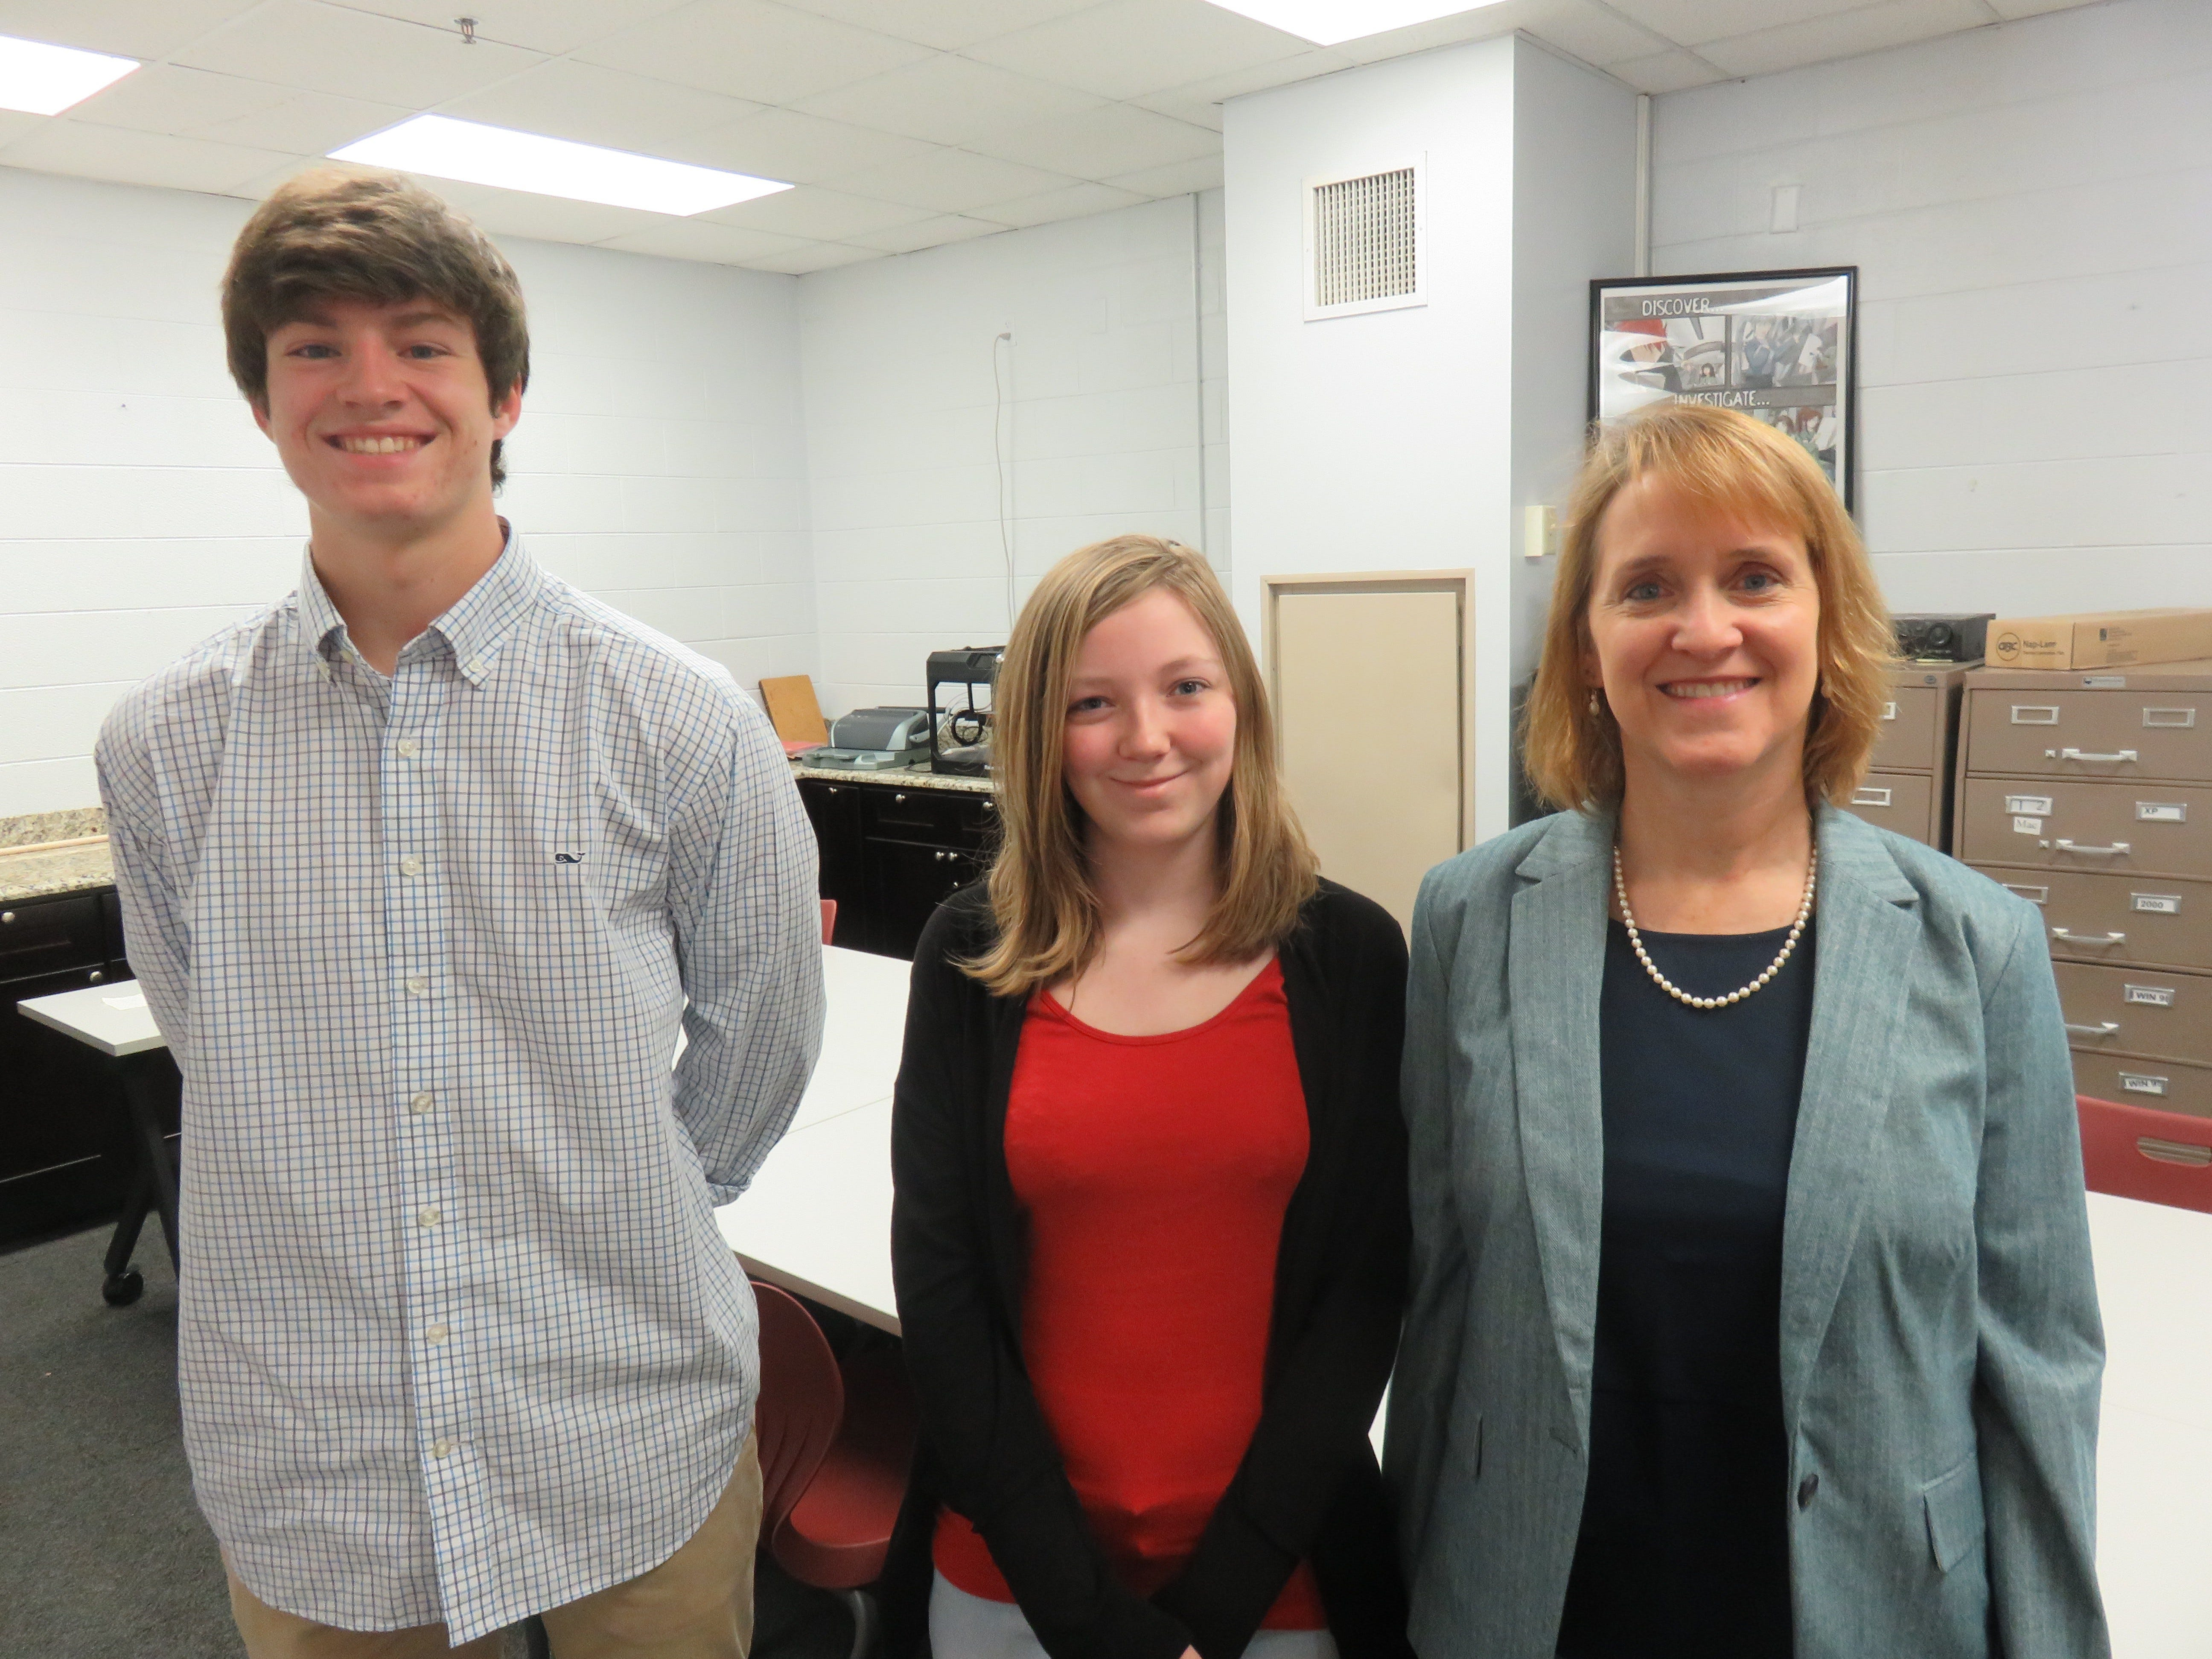 Bearden High Virtual Enterprises students Matt Carr and Chessa Runyan with teacher/facilitator Kathy McCoy, right. The class won two state championships recently in competition among other VE classes.